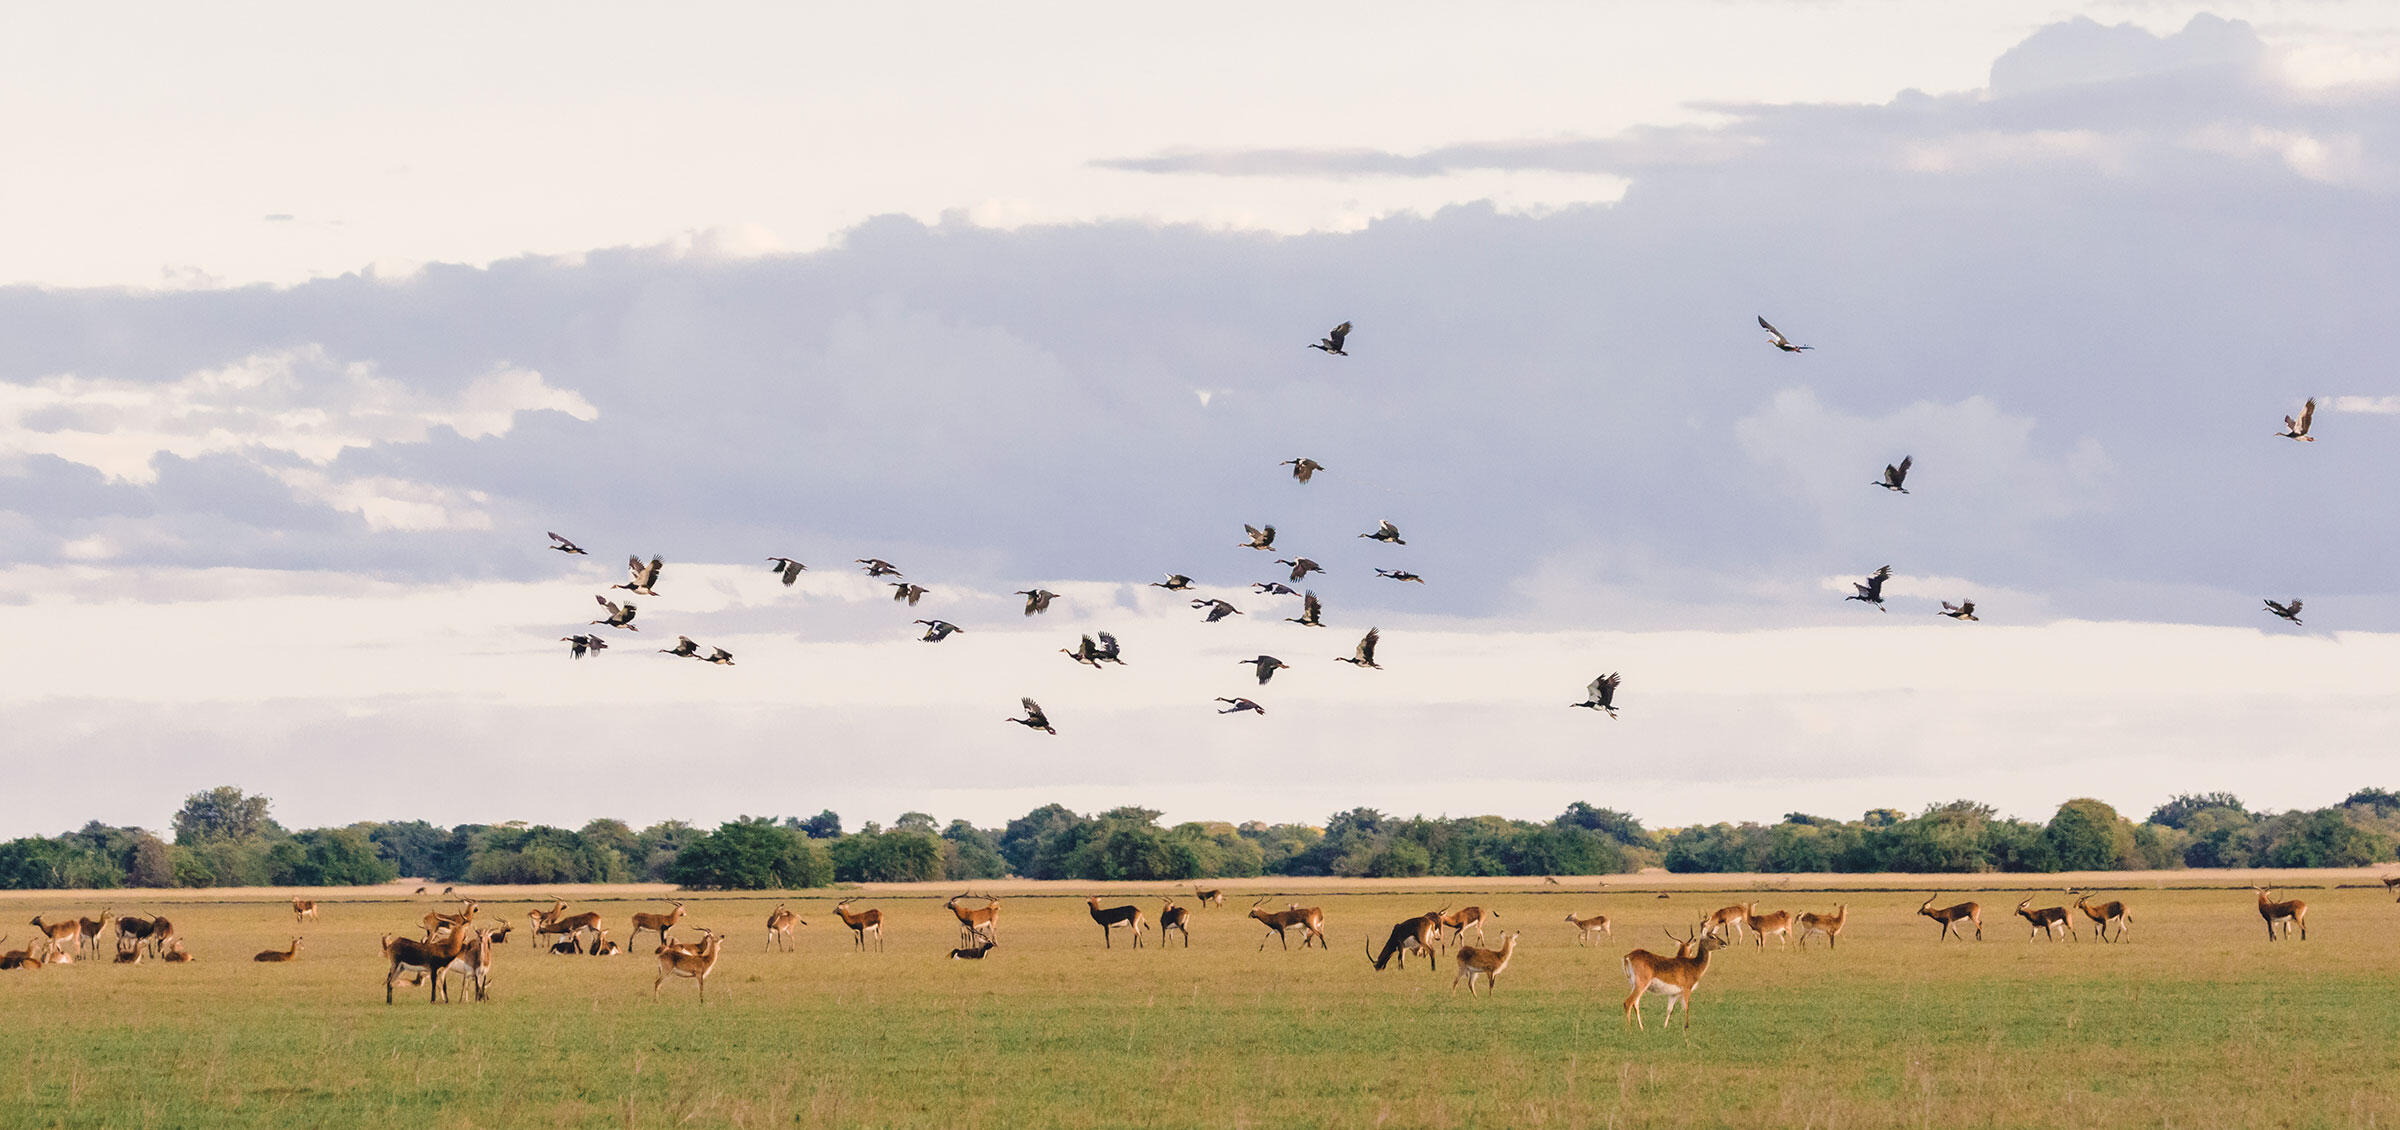 Spur-winged Geese and Lechwe in the Bangweulu Wetlands. Mana Meadows/African Parks